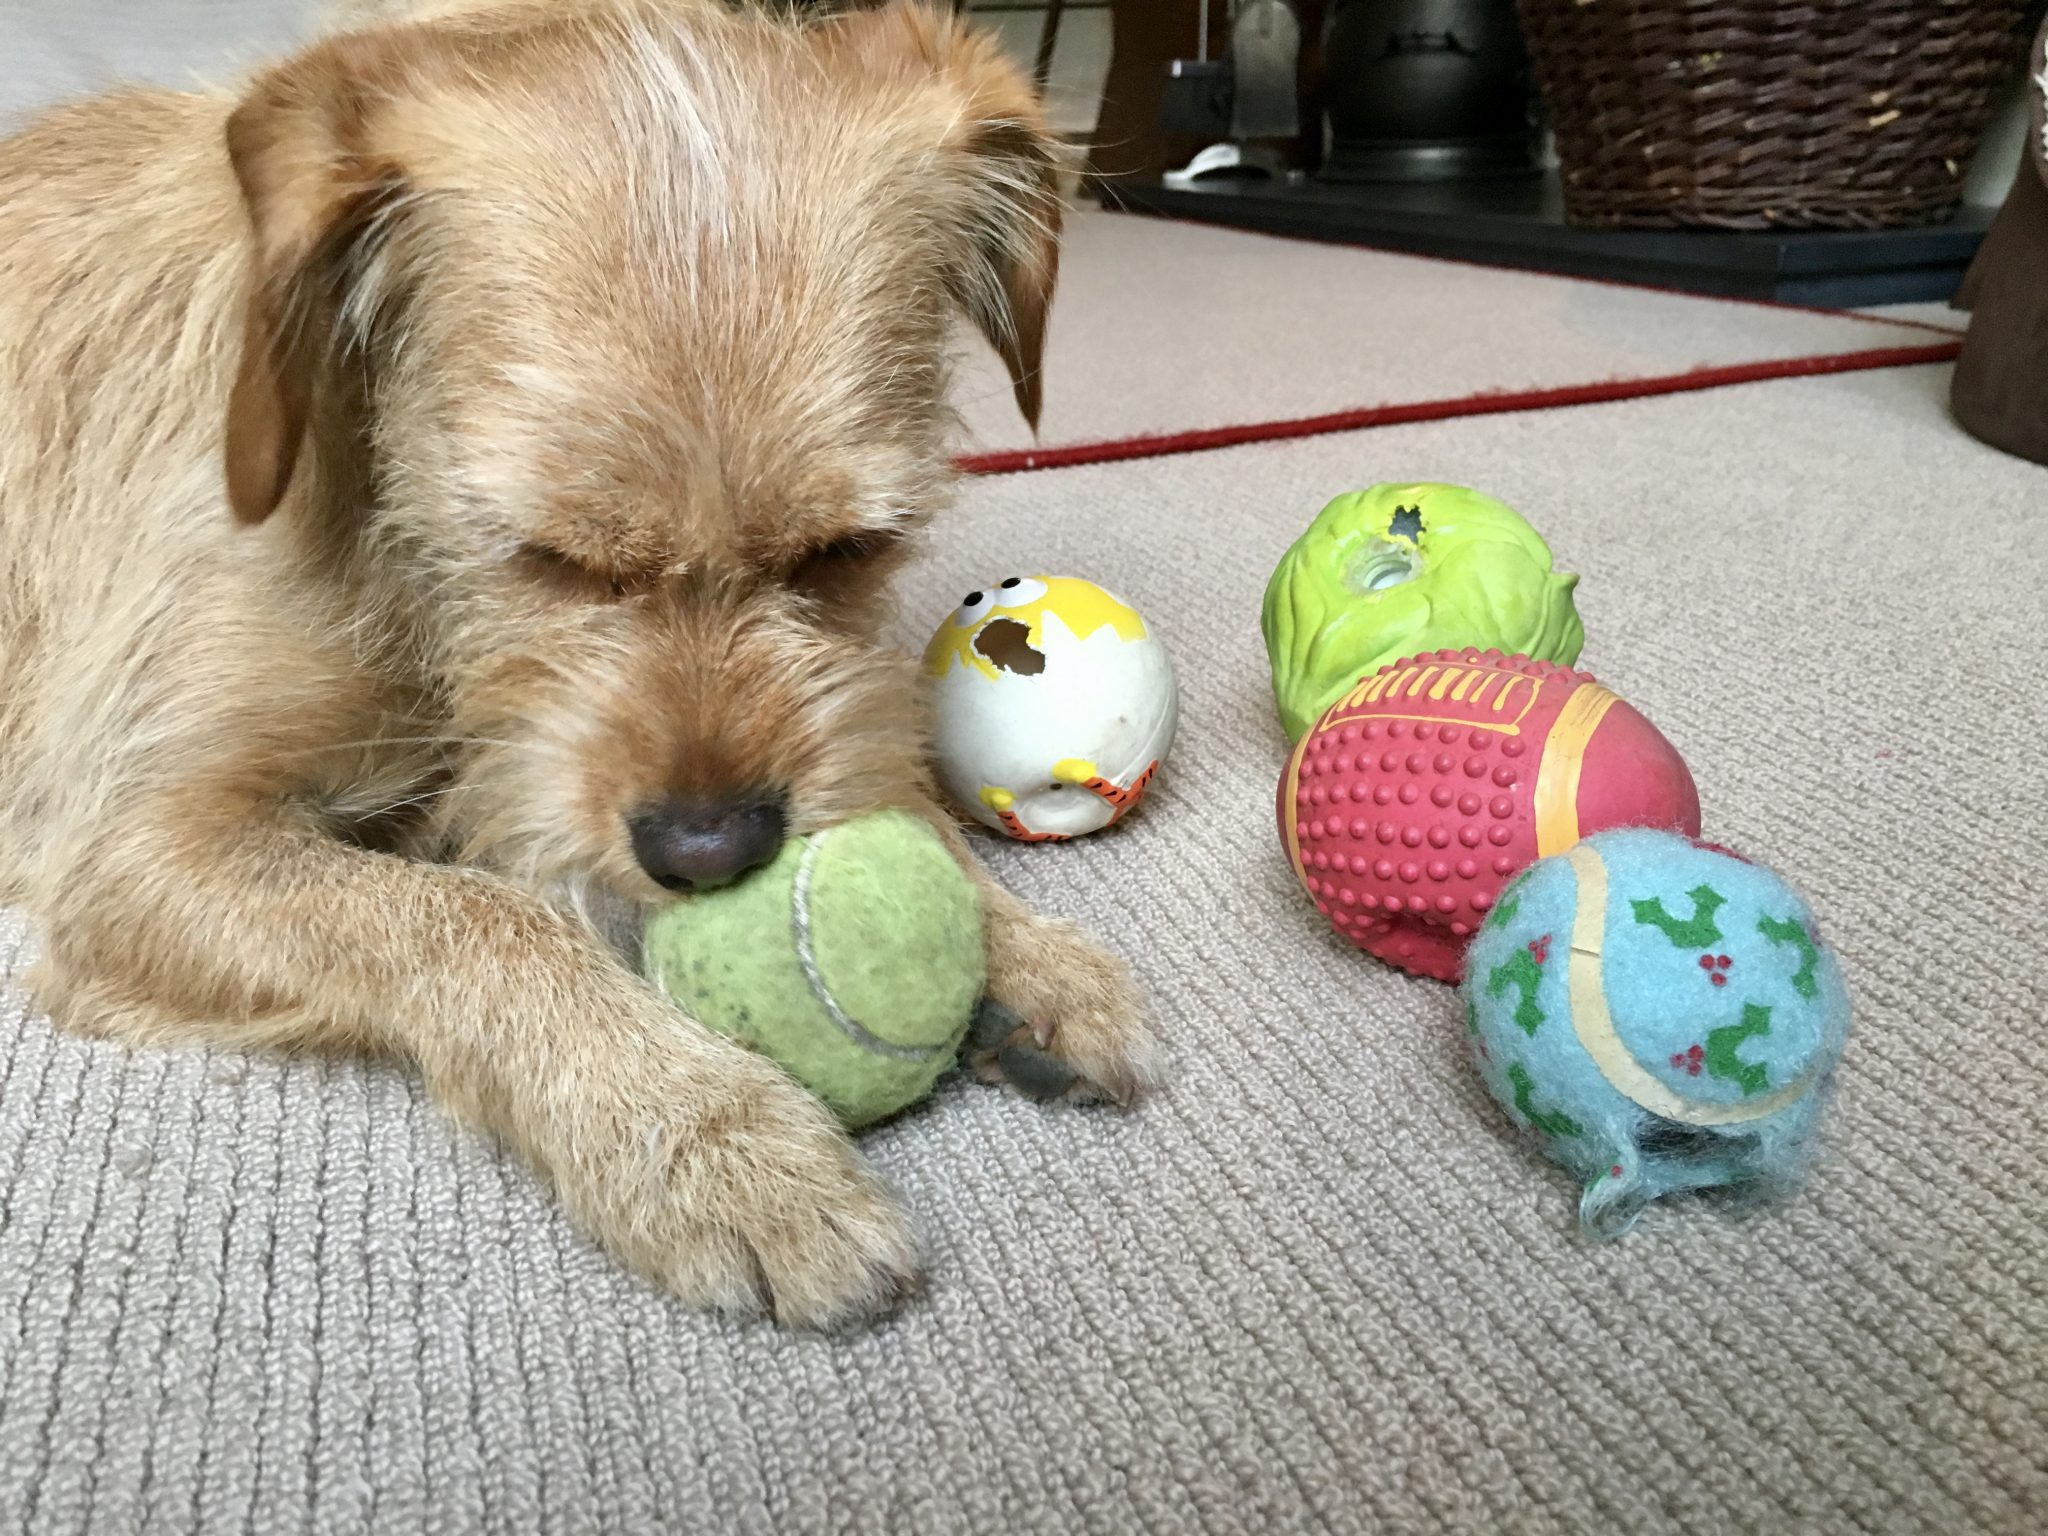 Dog Enrichment Toys {Dog Enrichment Toys & Games} #DogToys #DogEnrichment #DogChews #DogGames #Reviews www.scruffylittleterrier.com